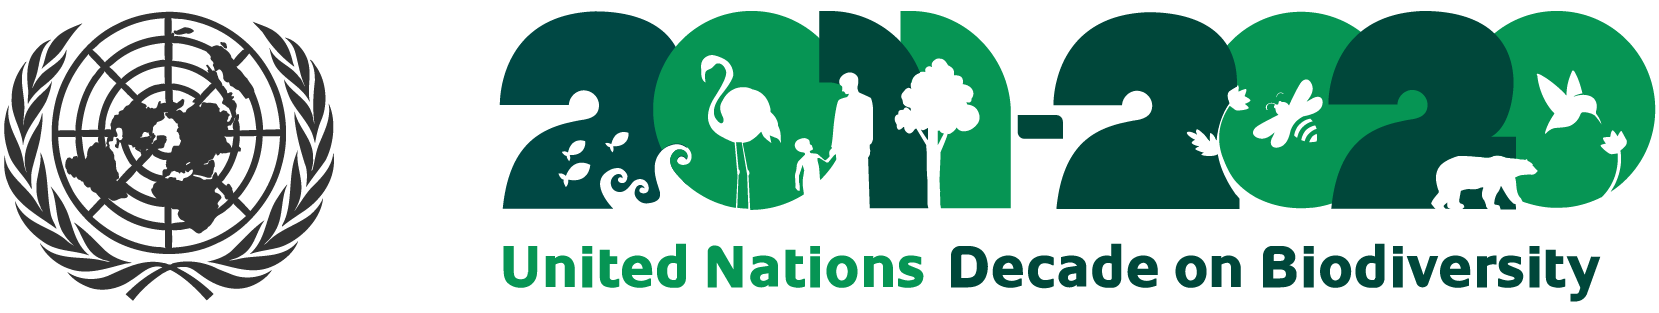 Logo United Nationes Decade on Biodiversity